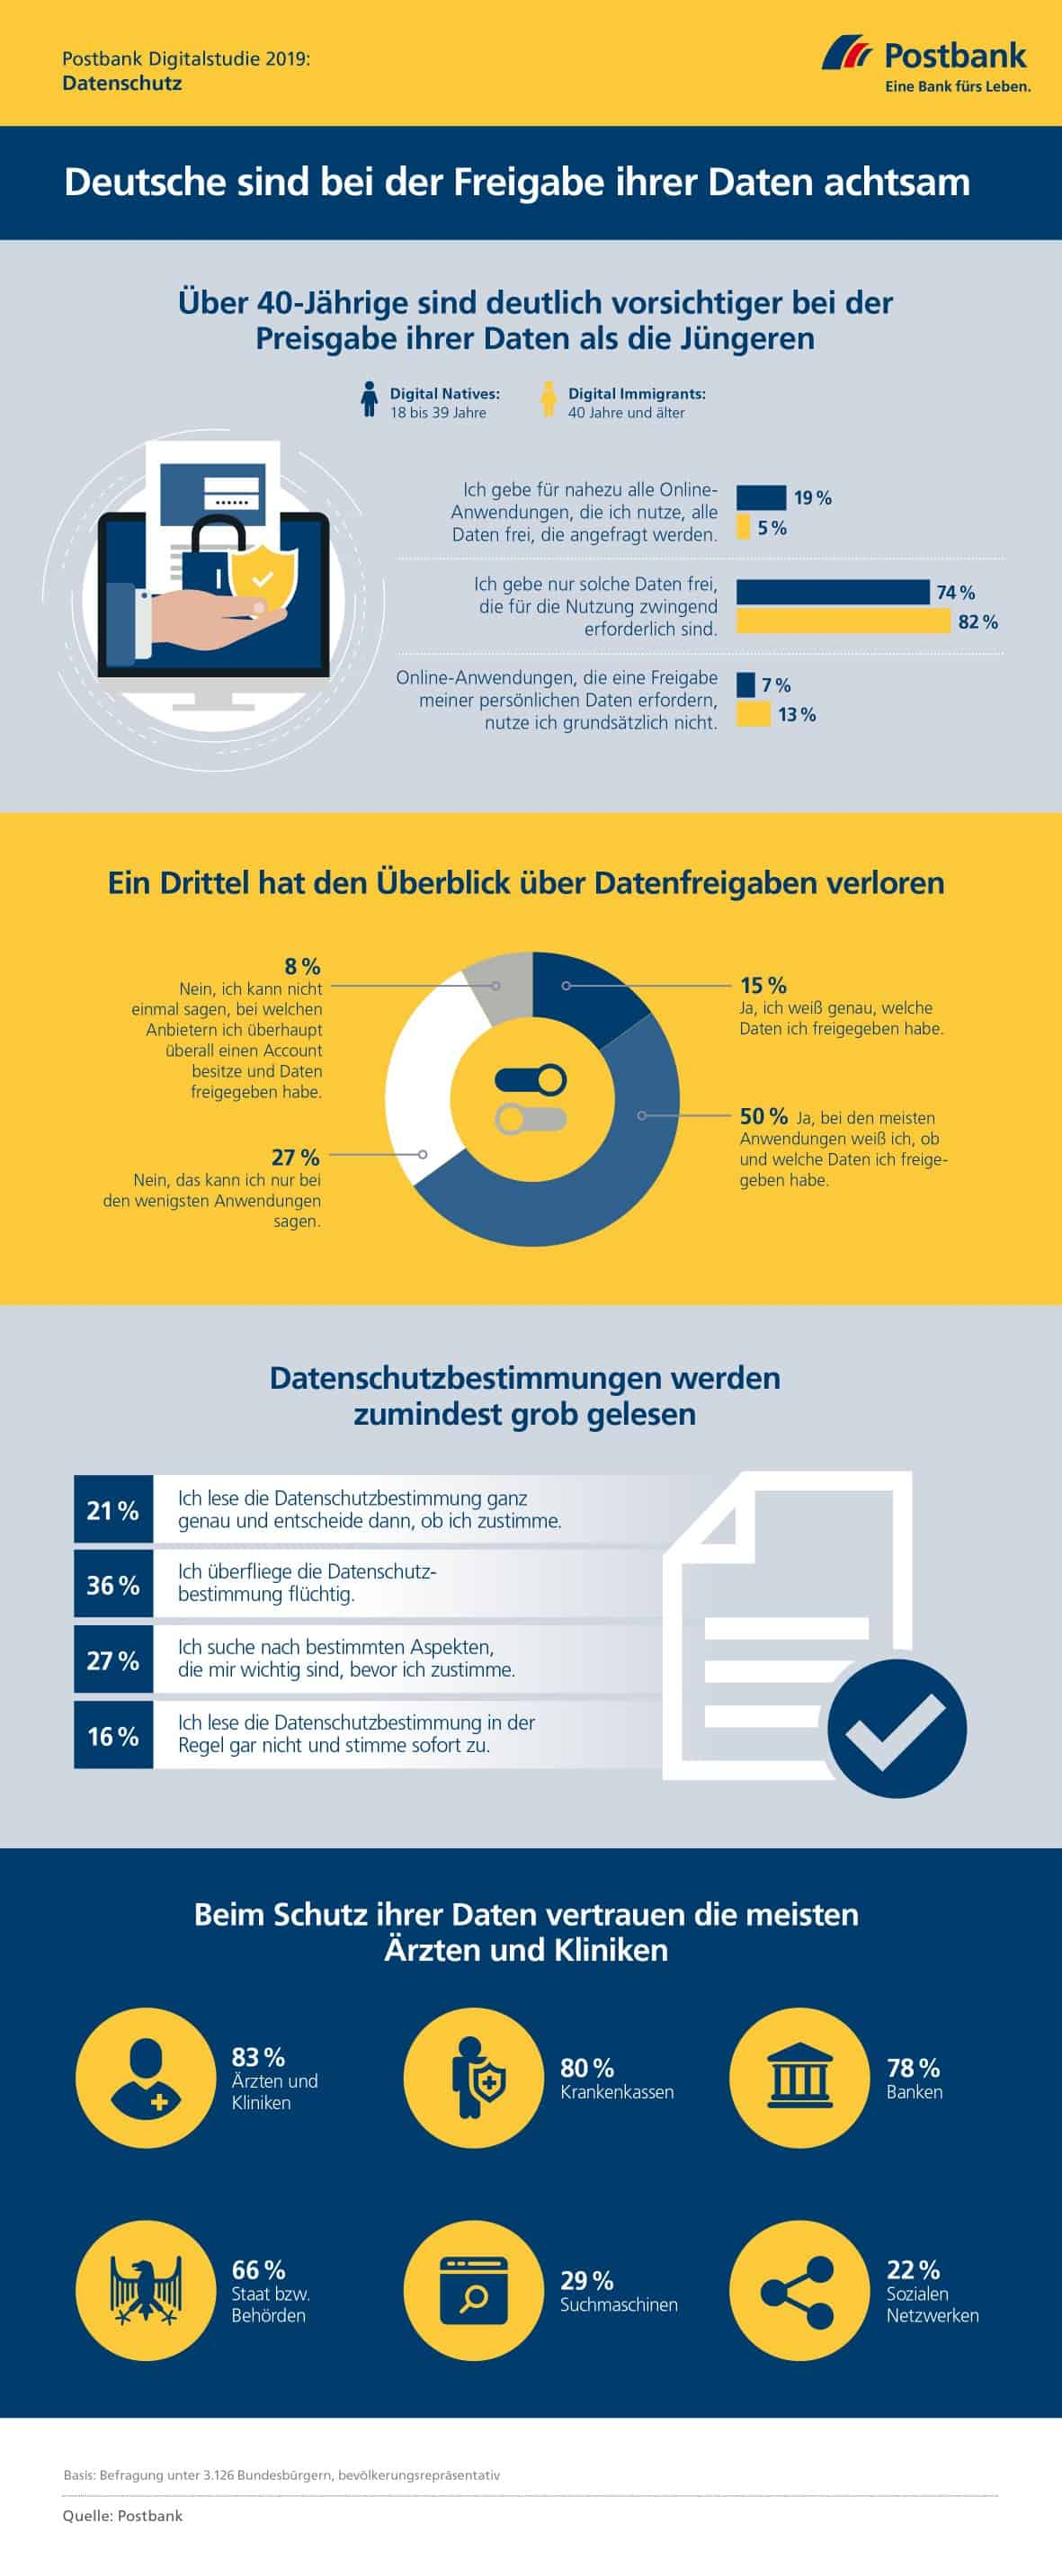 Postbank Digitalstudie 2019